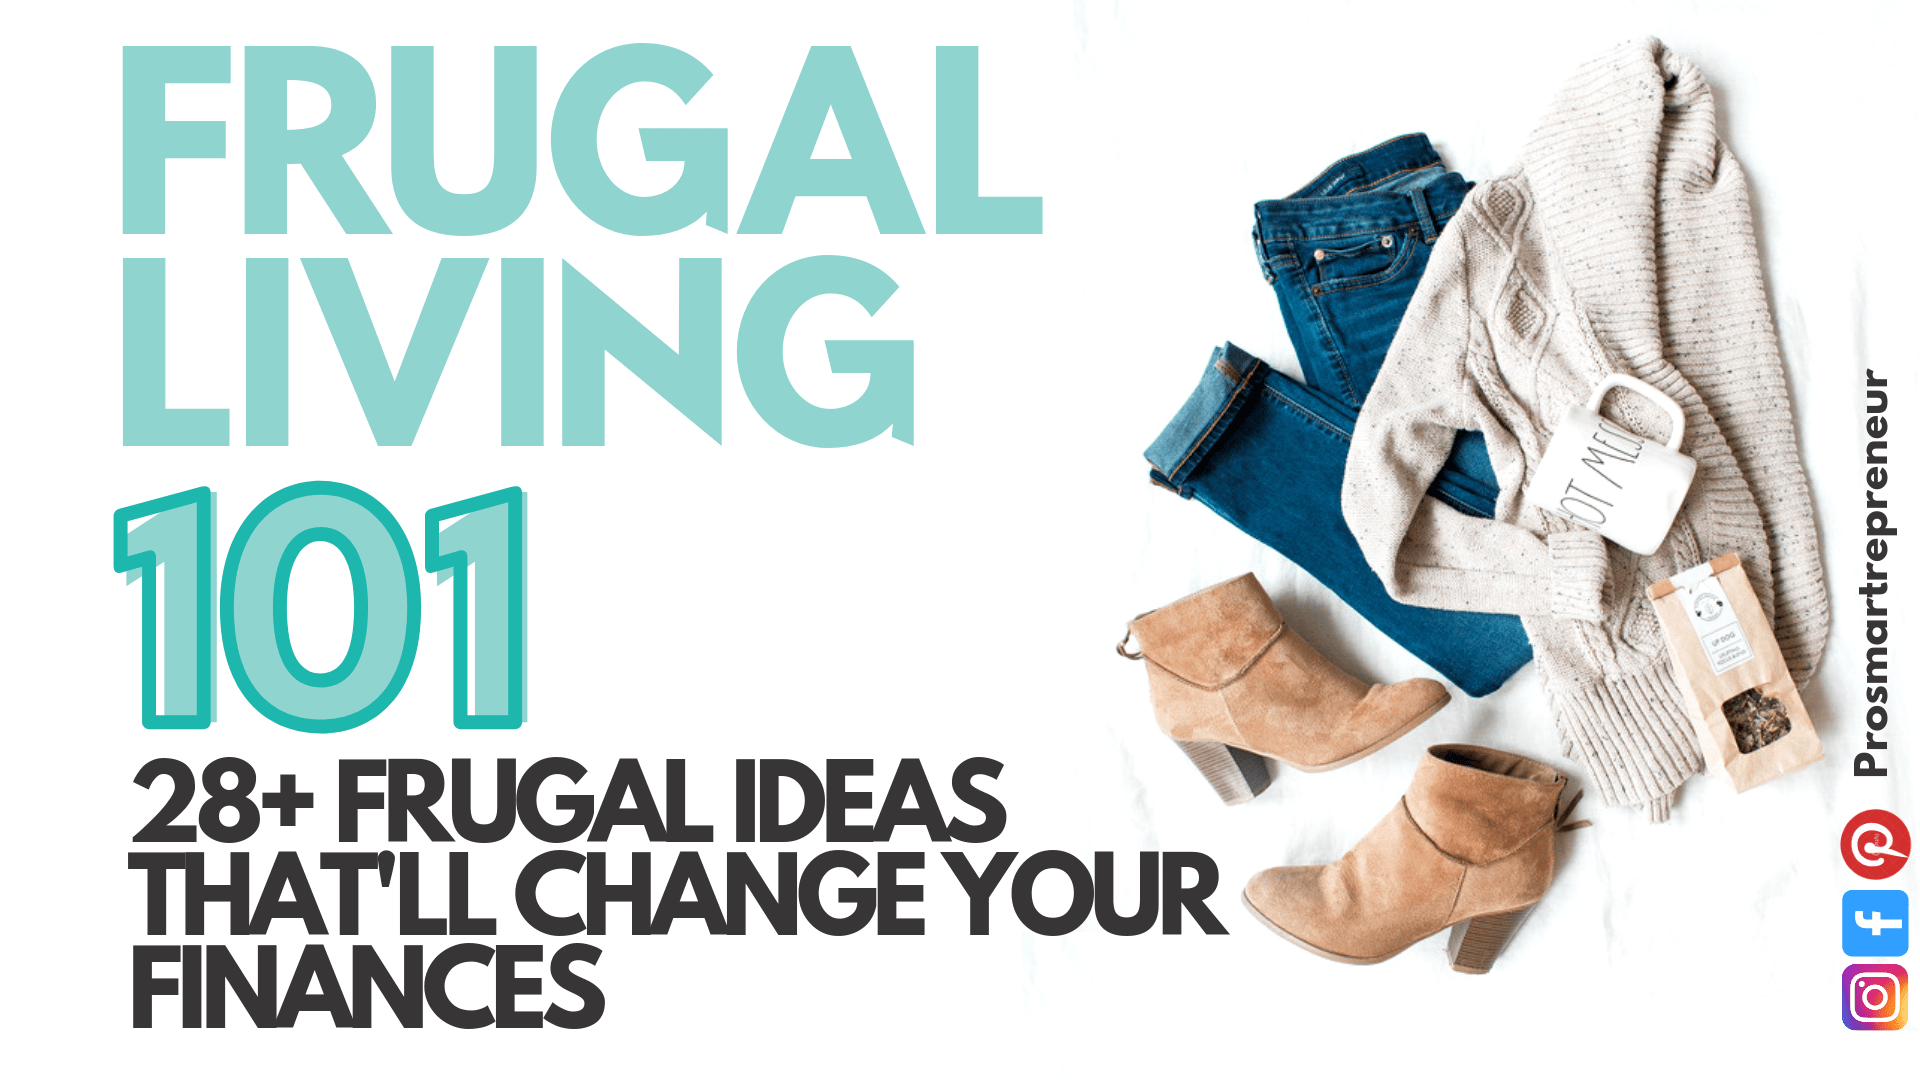 Frugal Living Ideas : 40 Frugal Ideas That'll Change Your Finances